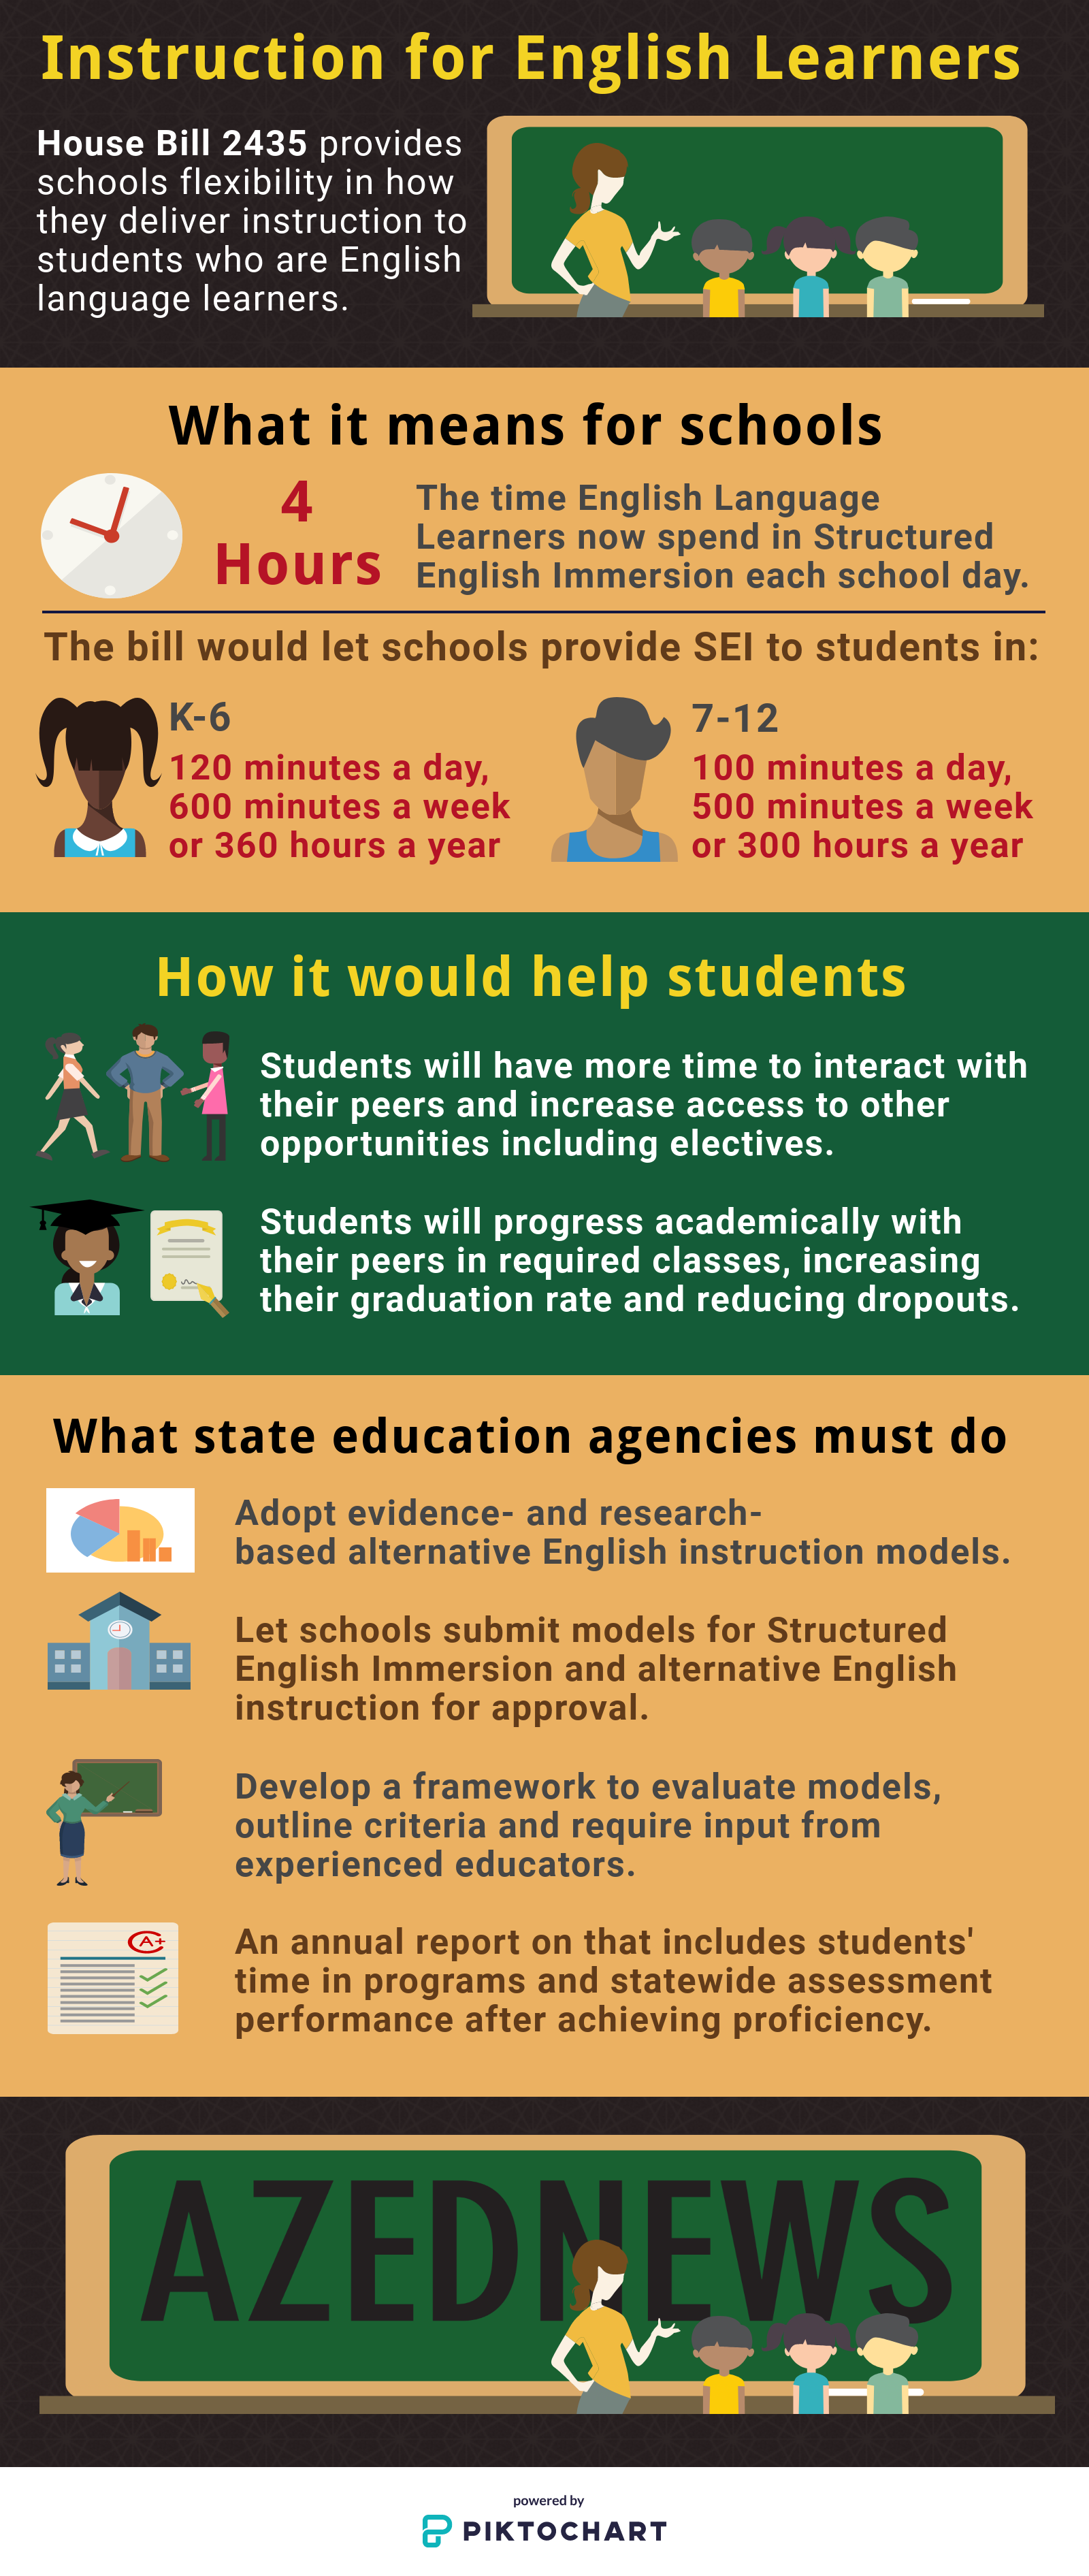 Bill's provisions would help ELL students graduate on time AZEdNewsELLInstructionInfographic